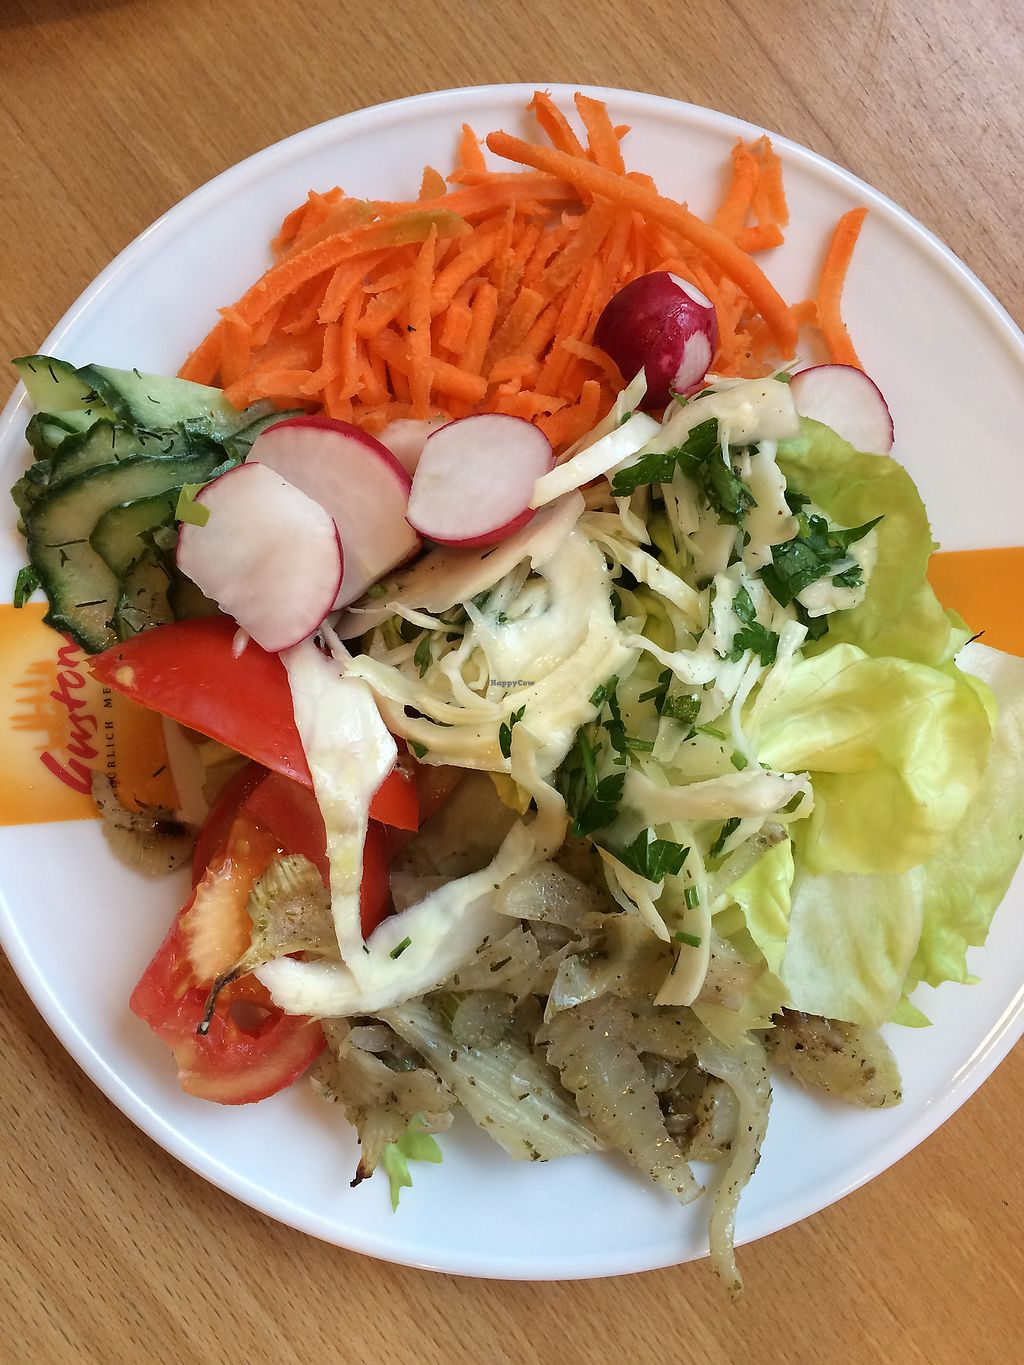 """Photo of Fischer Mühle BioMarkt   by <a href=""""/members/profile/Carissima"""">Carissima</a> <br/>Salad composed of organic vegetables  <br/> October 12, 2017  - <a href='/contact/abuse/image/102645/314449'>Report</a>"""